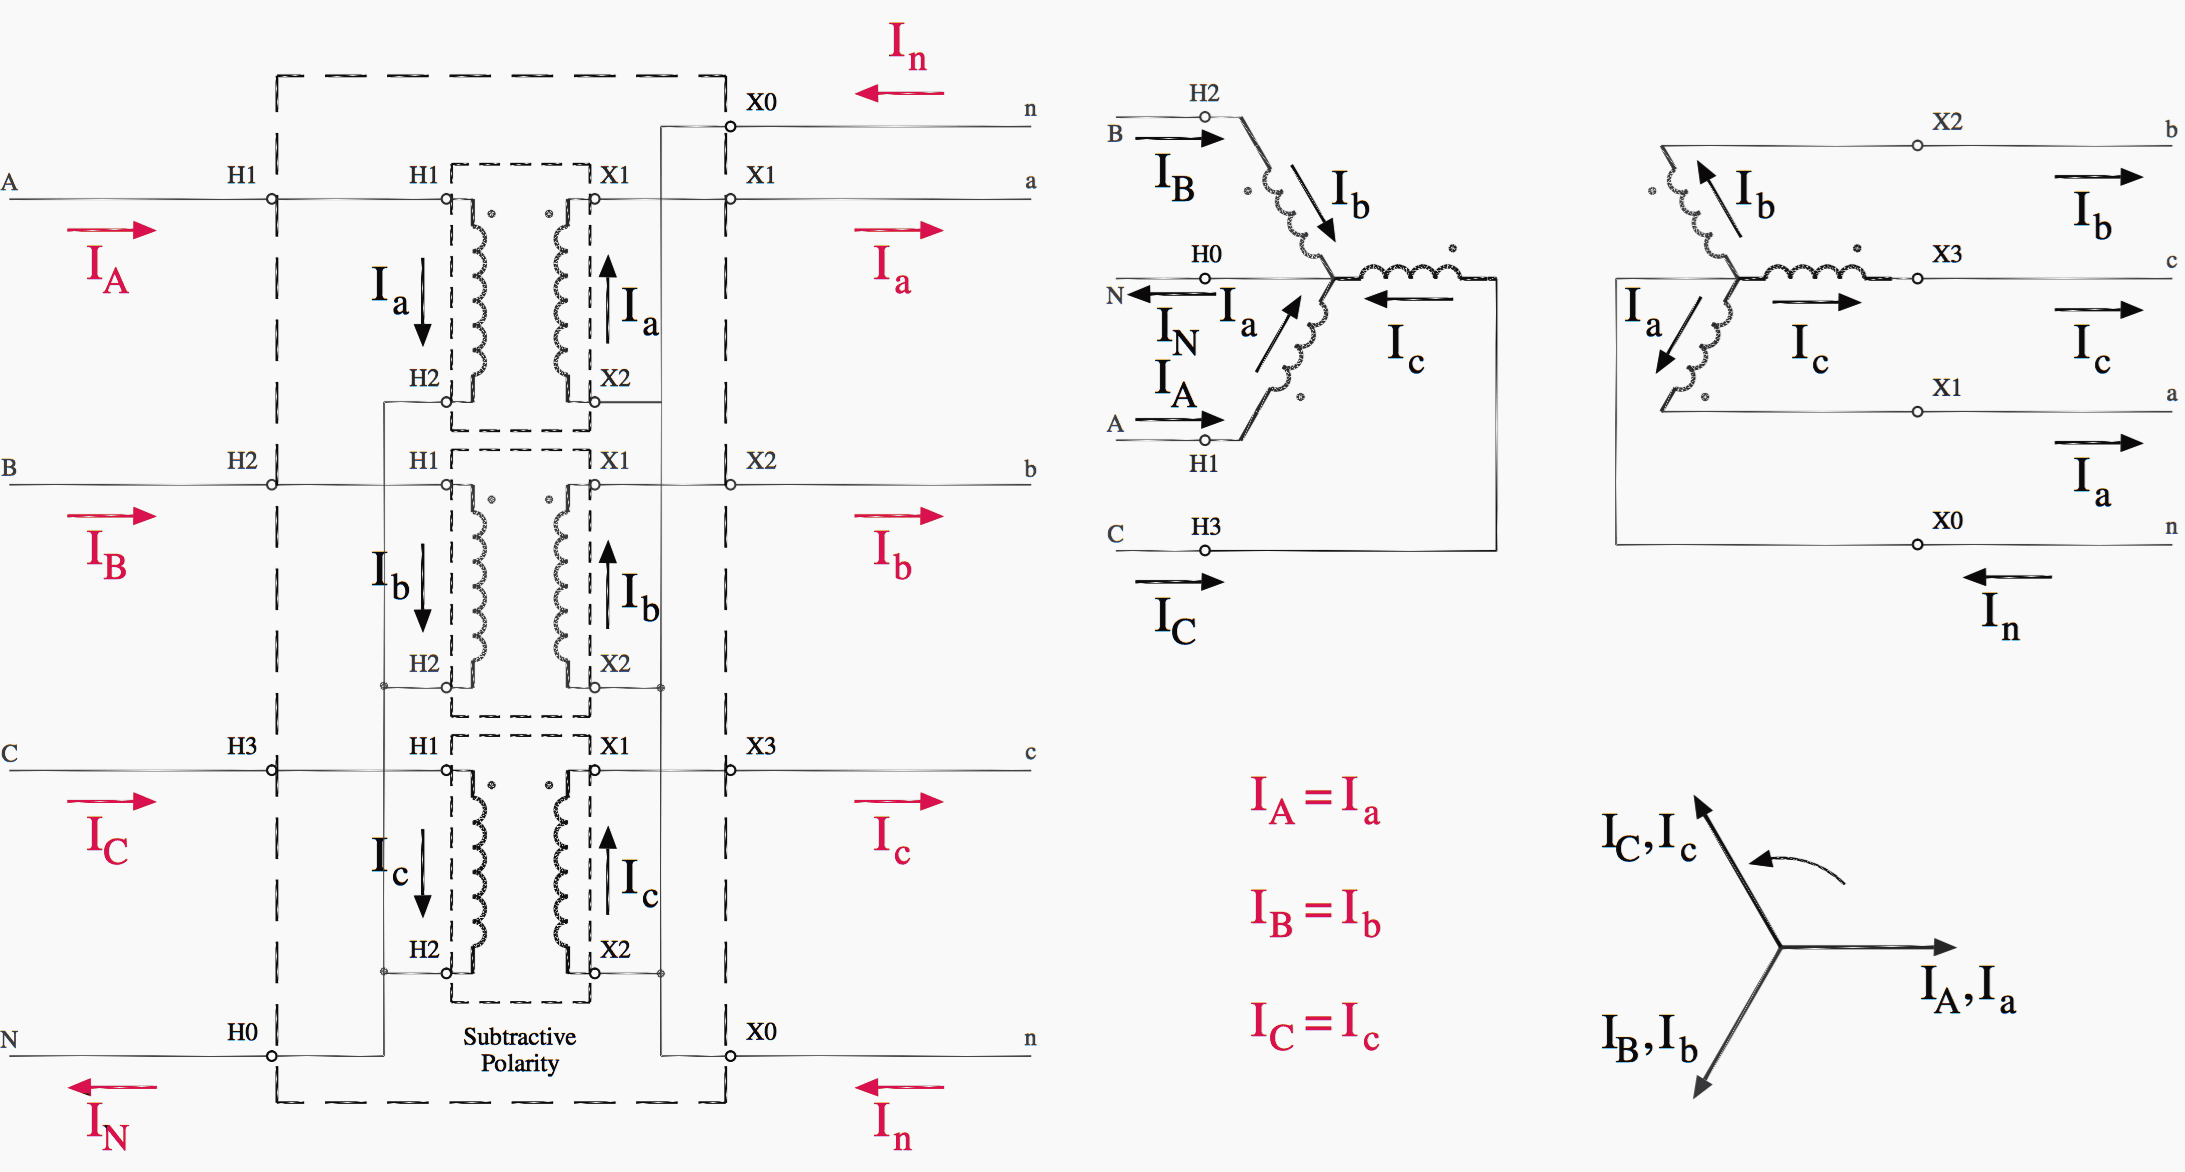 3 phase connection diagram